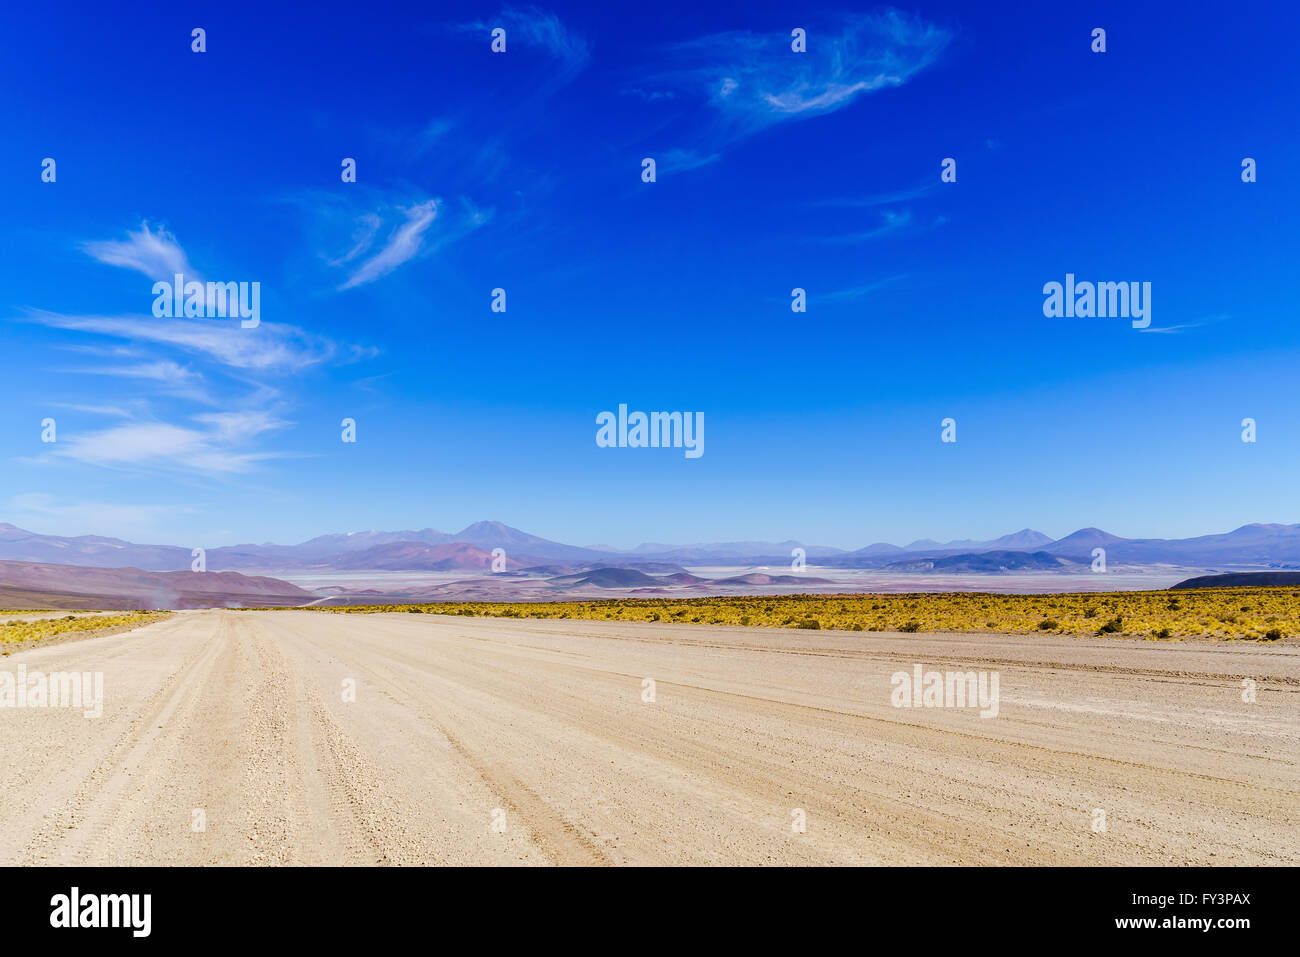 Panoramic view of The World Largest Salt Flats at Uyuni in Bolivia - Stock Image